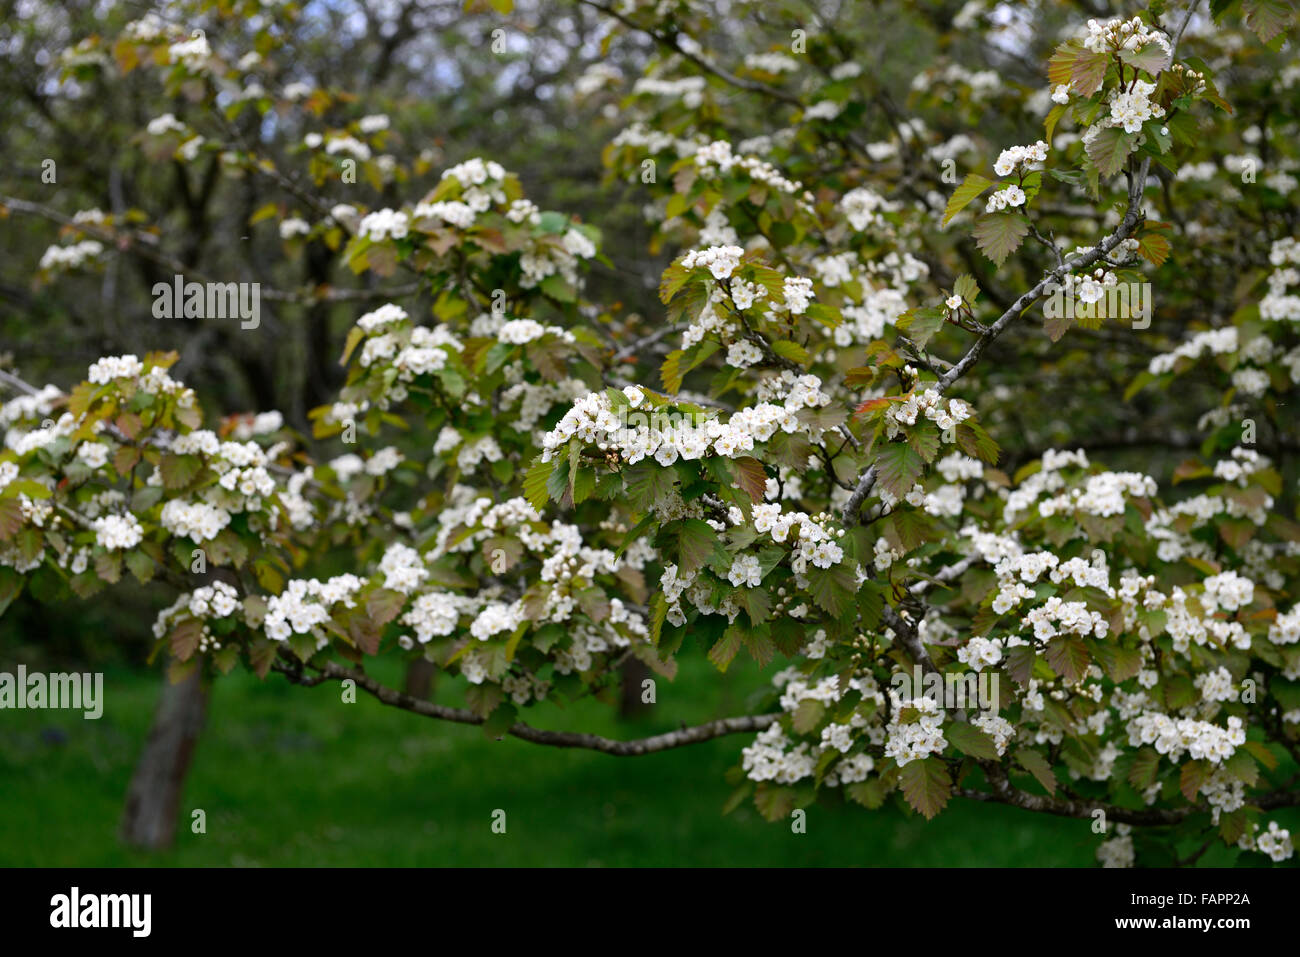 Hawthorn tree Crataegus monogyna white flower flowers flowering spring tree shrub RM Floral may mayblossom maythorn - Stock Image